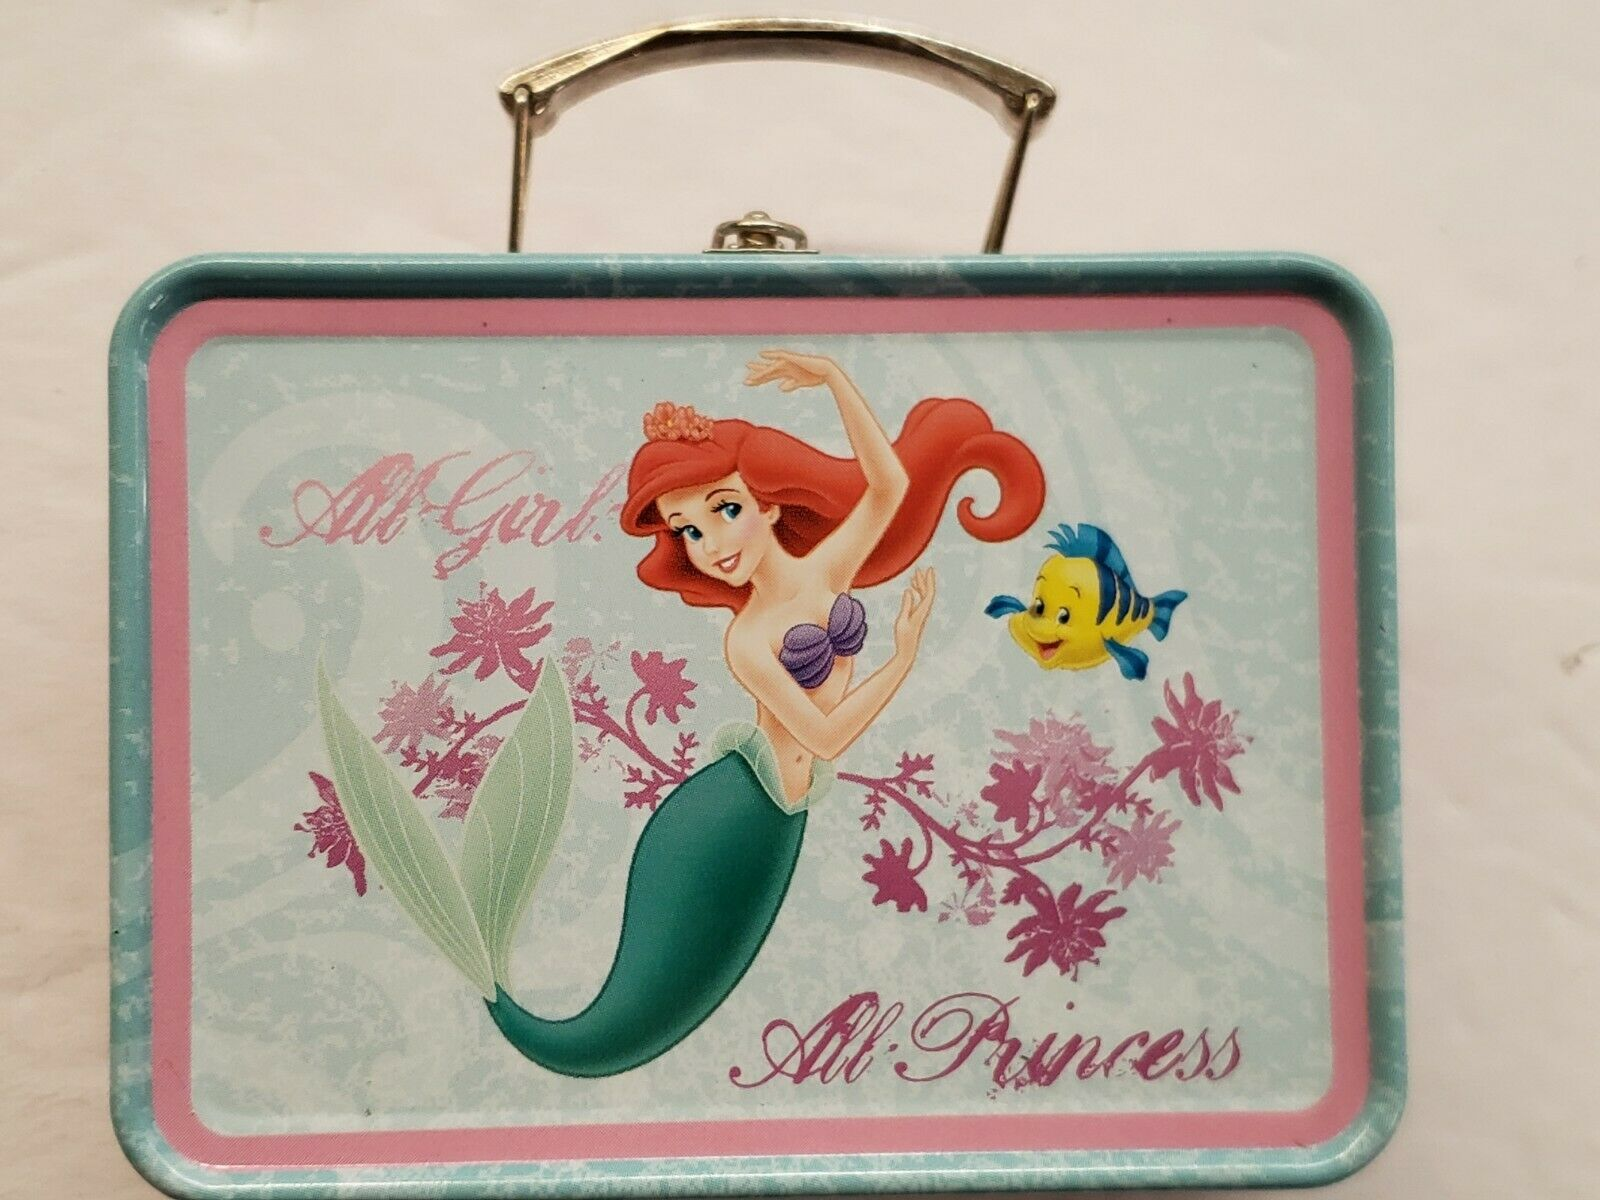 DISNEY'S Little Mermaid Tin Box - Lunch Box, New